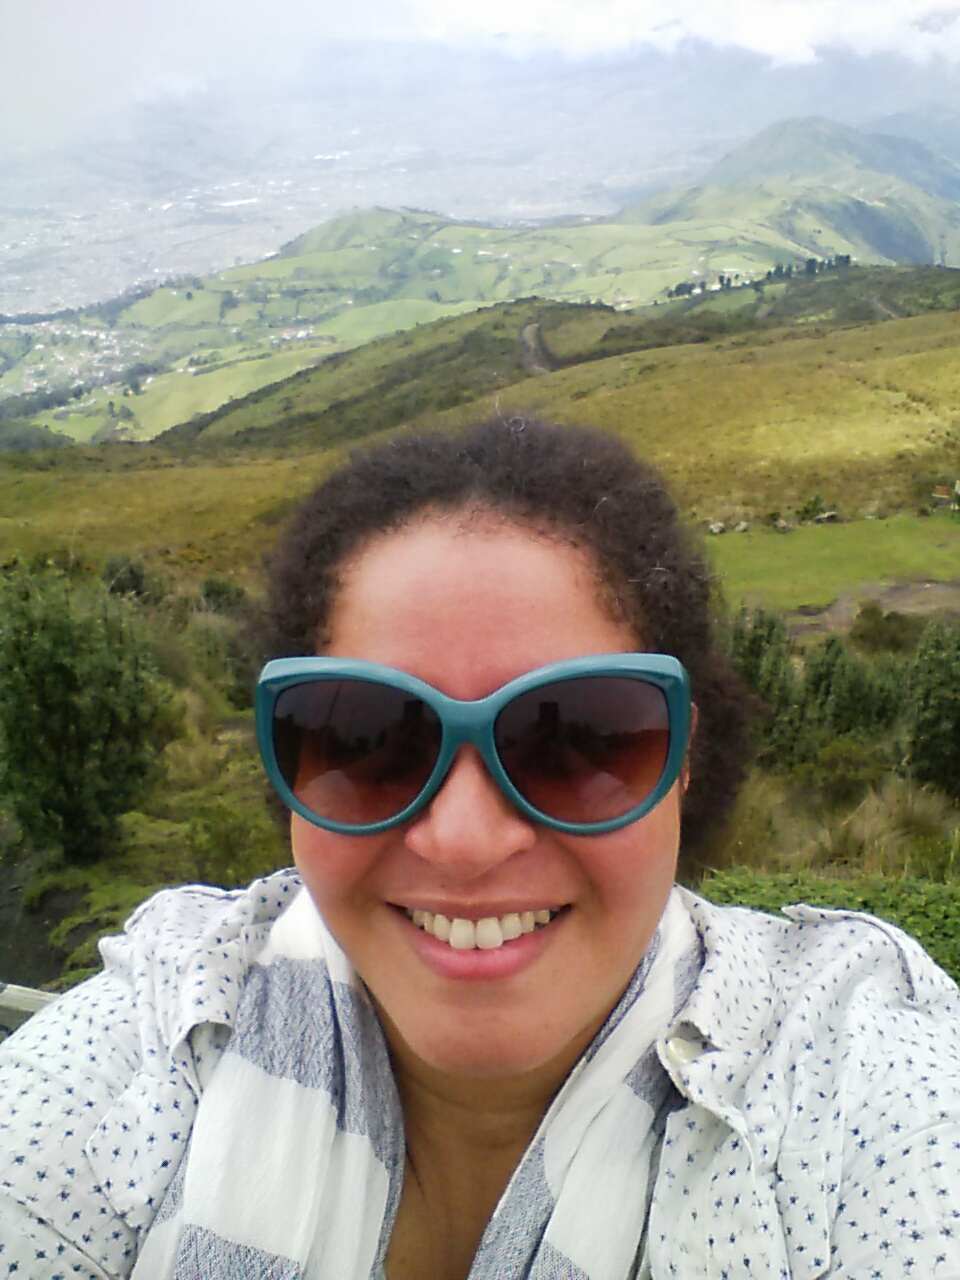 Me on the east side of Pichincha.